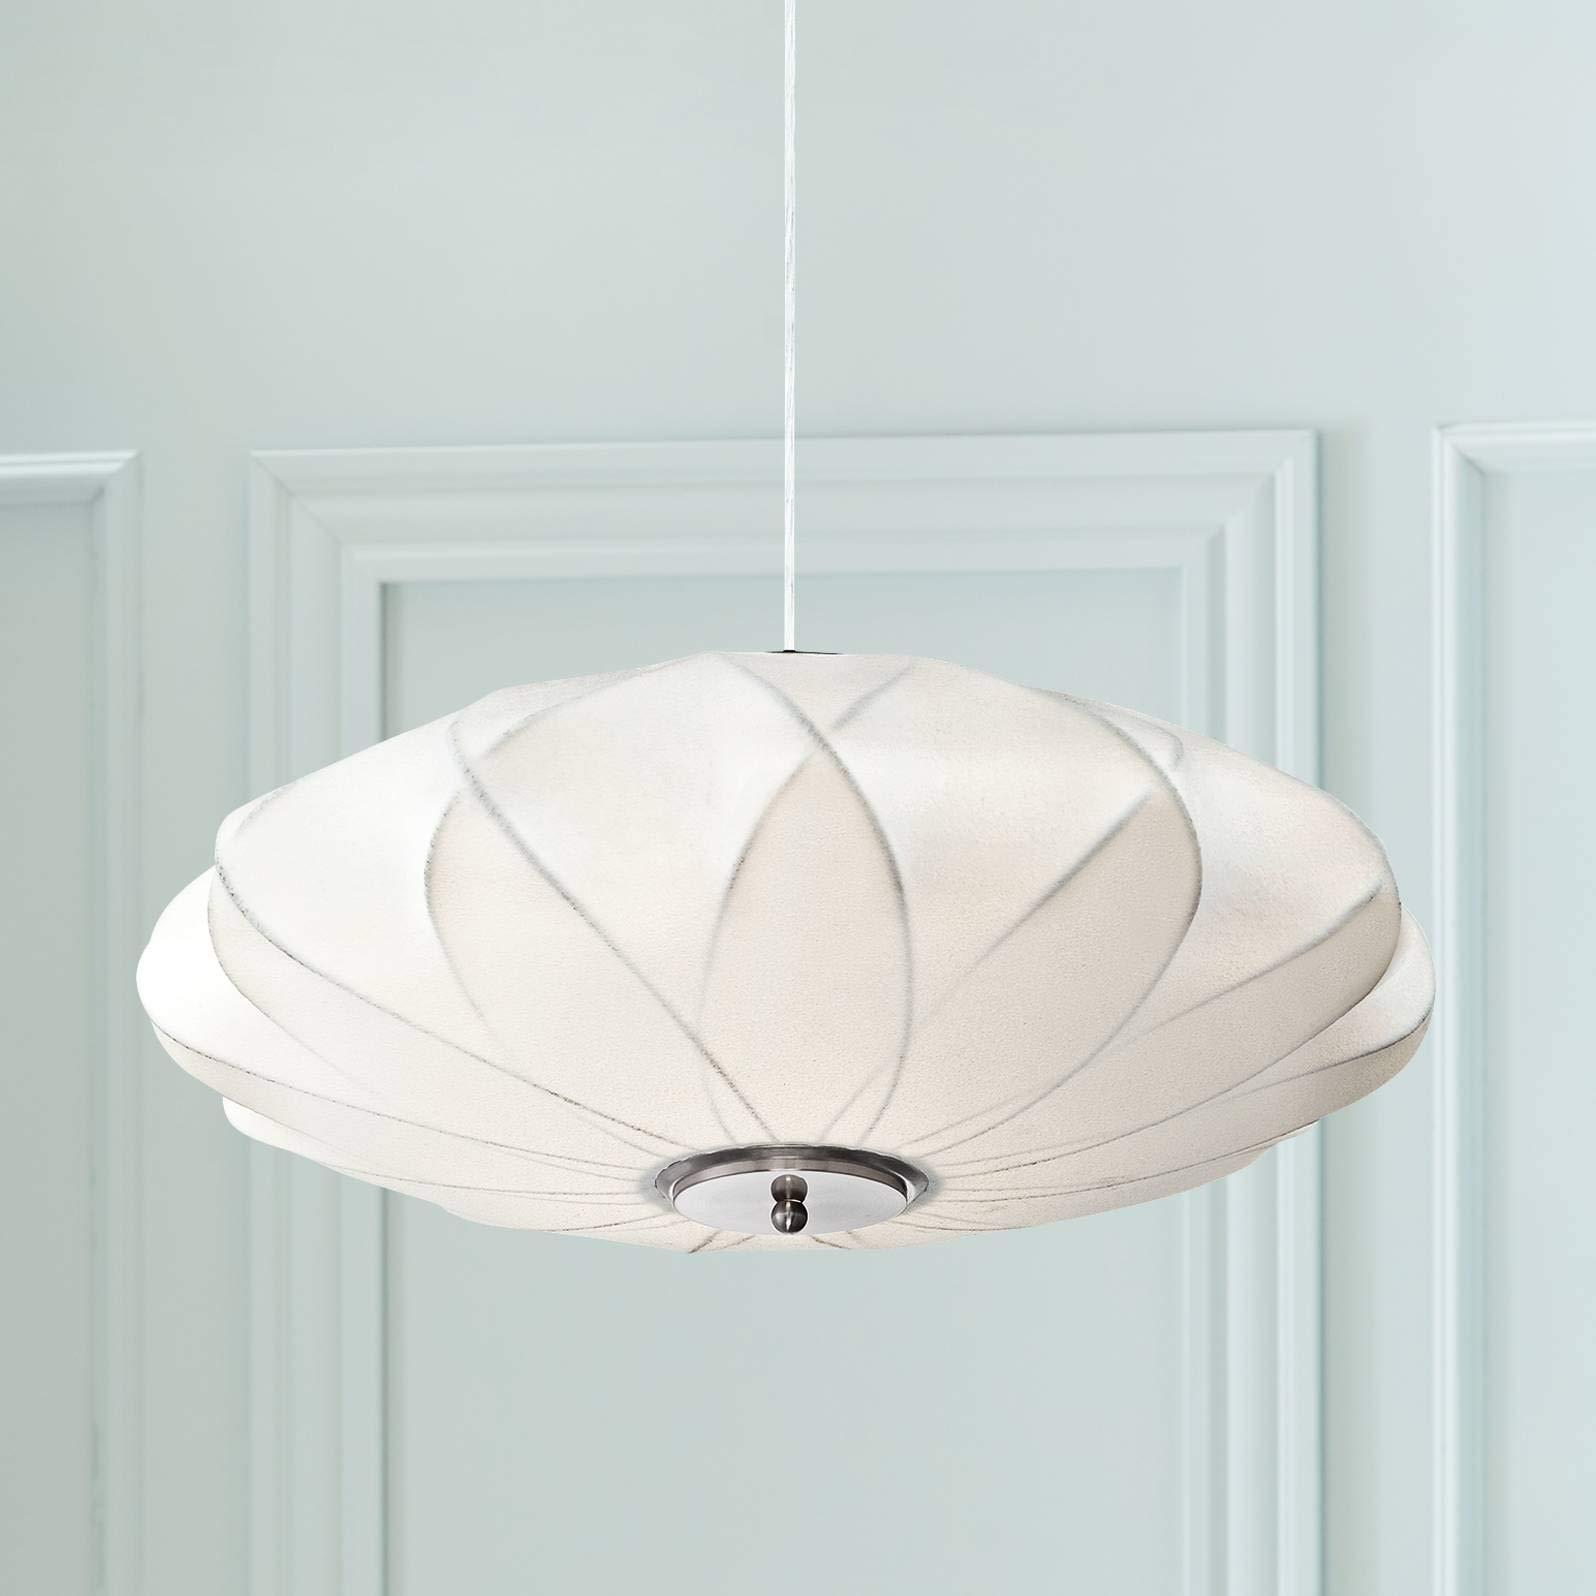 """Flower Cloud Brushed Nickel Pendant Chandelier 22 1/2"""" Wide Modern White Saucer Shade 3-Light Fixture for Dining Room House Foyer Kitchen Island Entryway Bedroom Living Room - Possini Euro Design"""